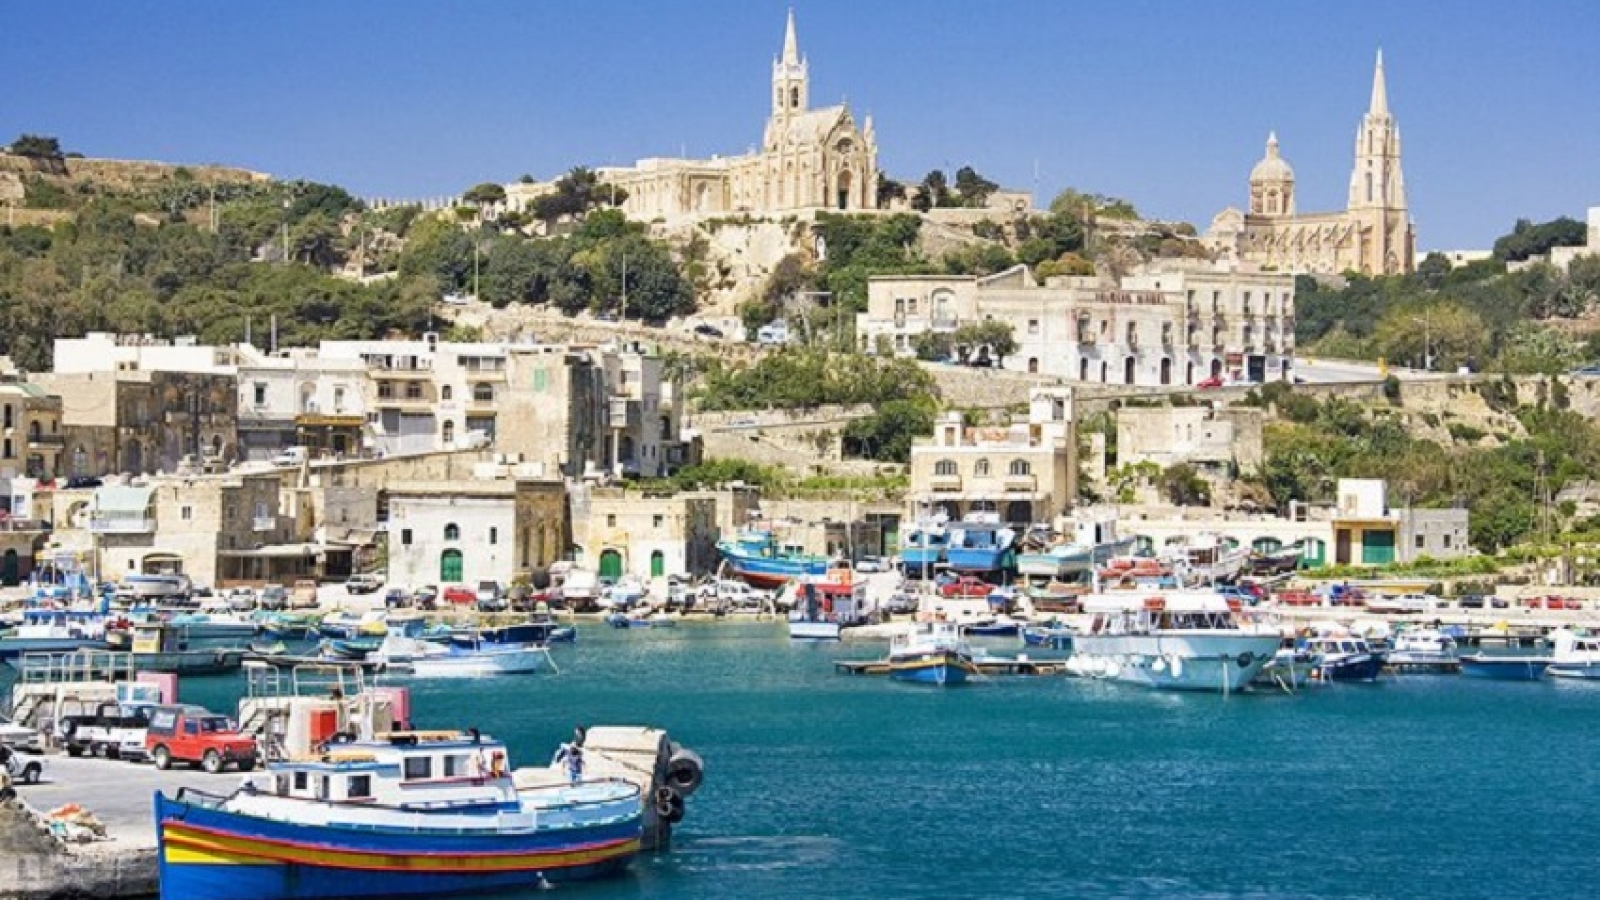 Travel destinations on the UK COVID19 green list